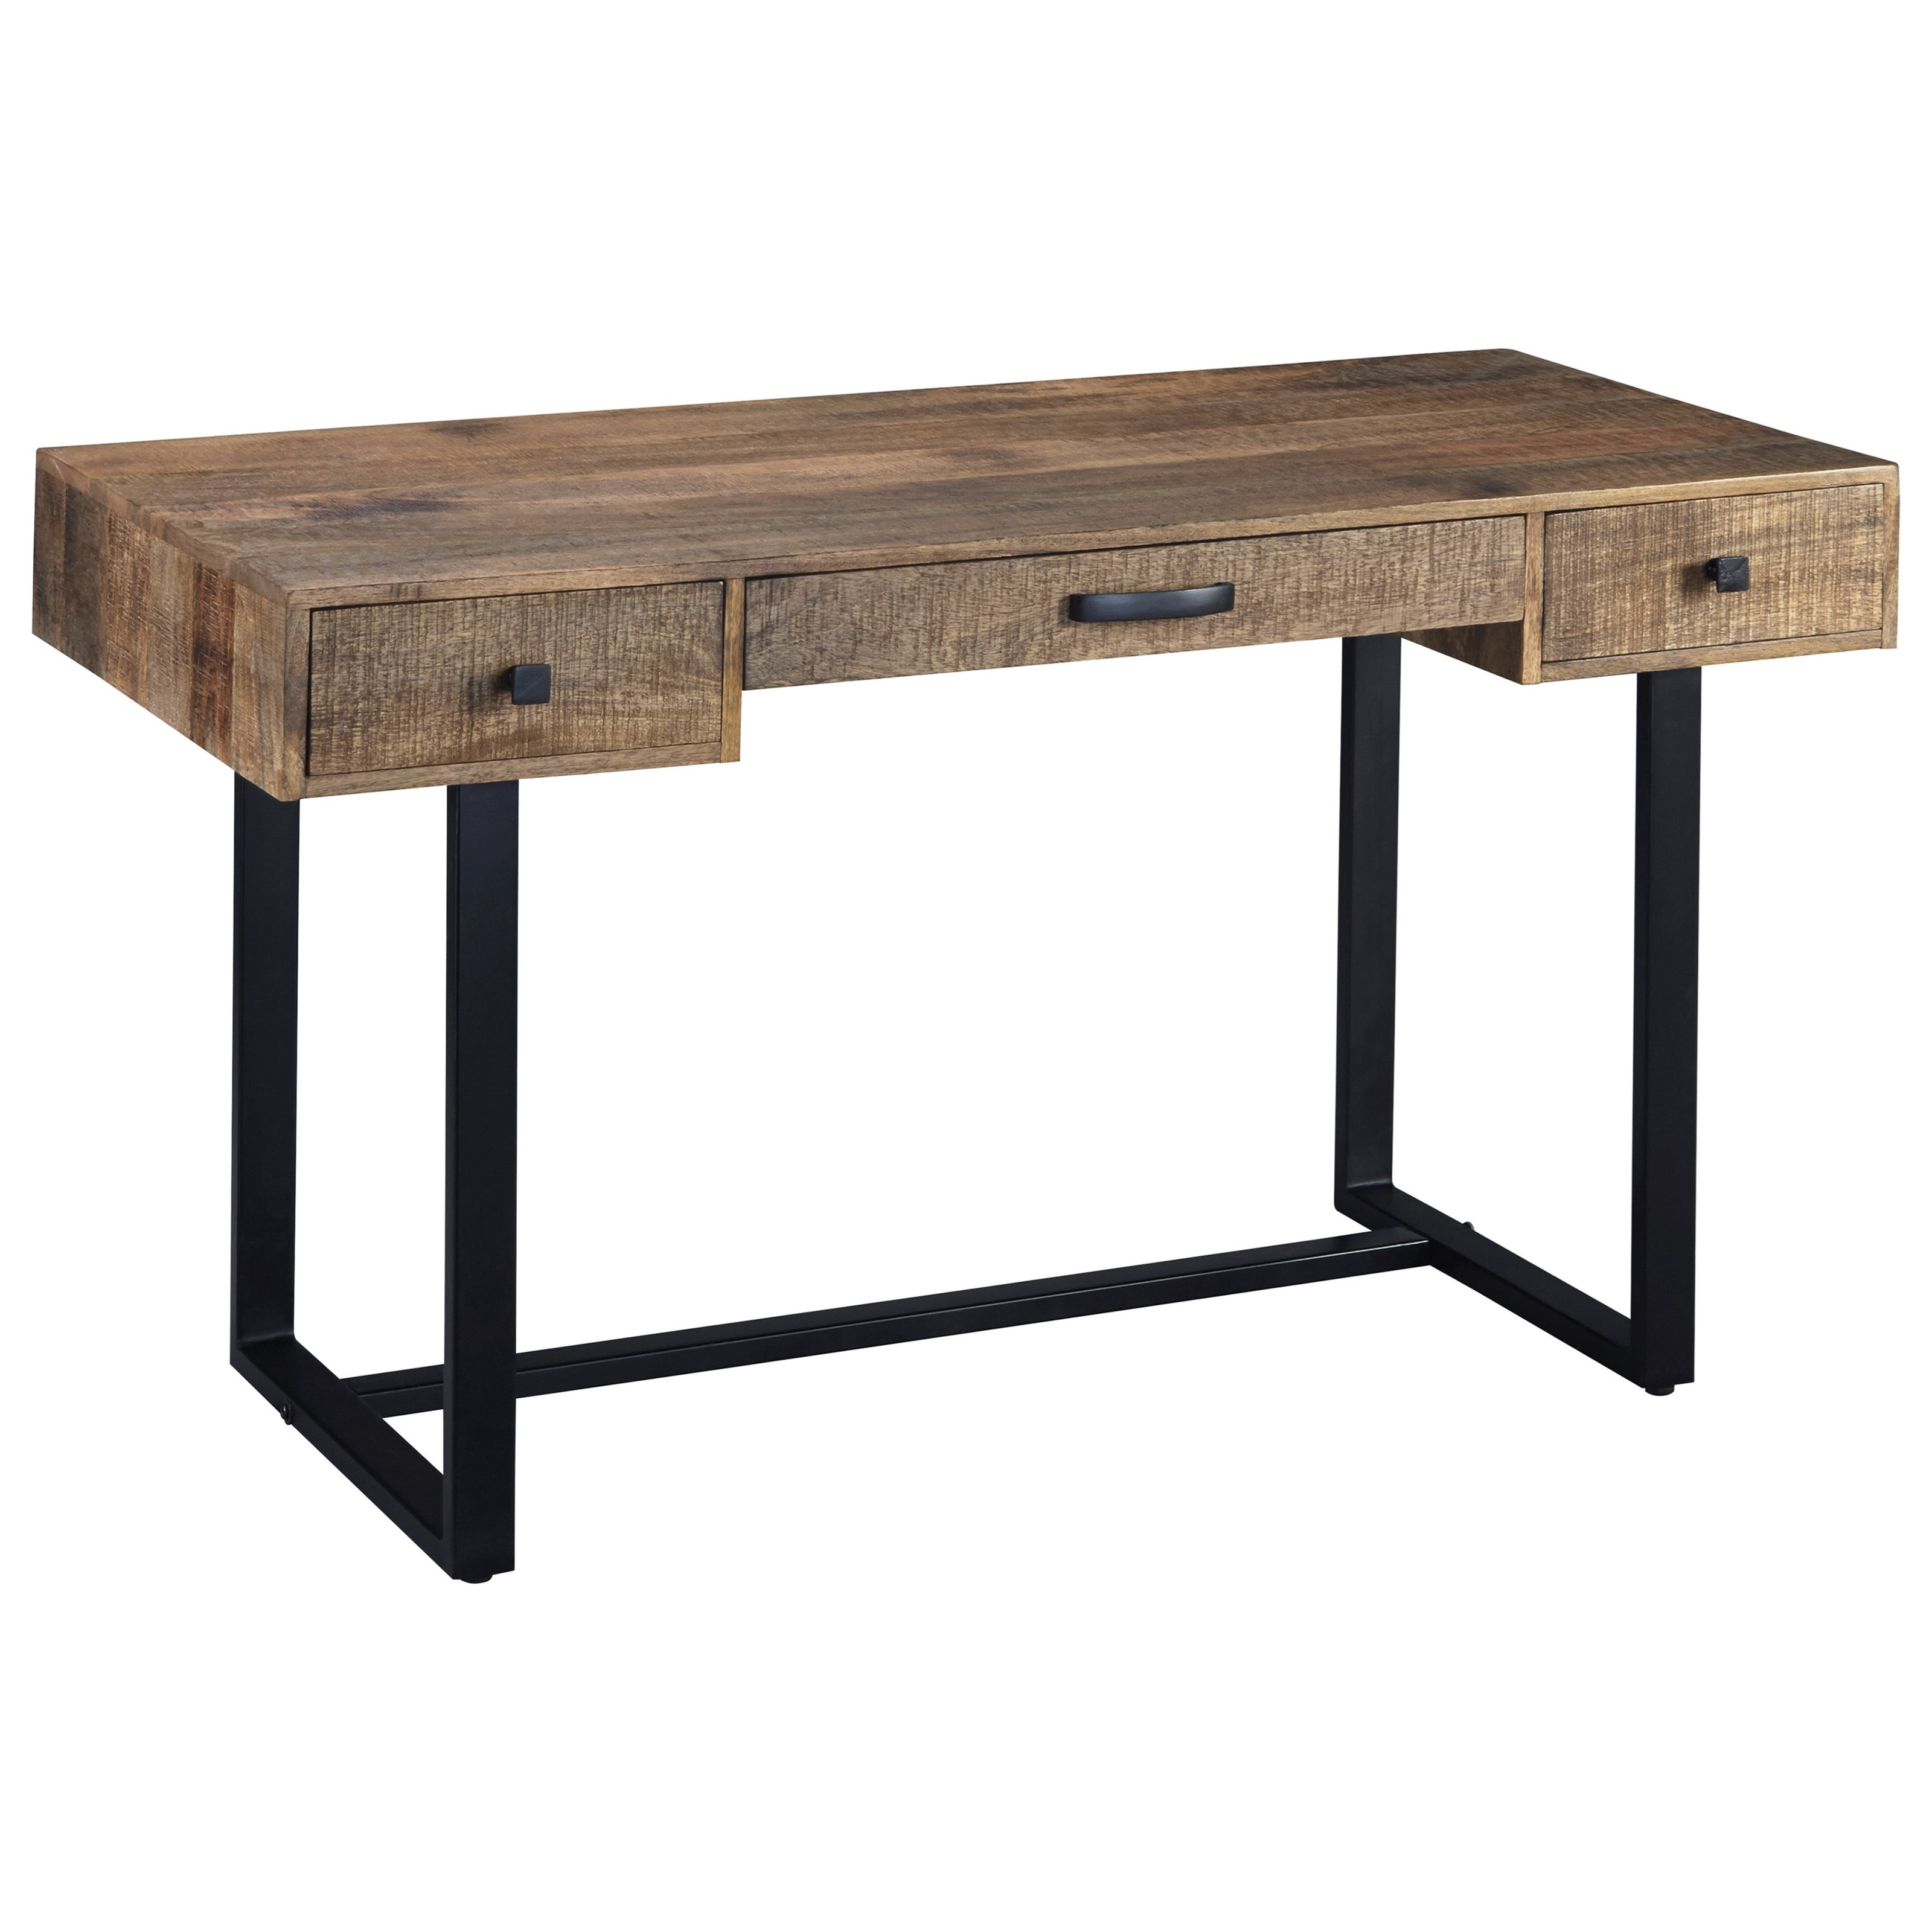 Mango wood metal home office desk by signature design by ashley wolf and gardiner wolf furniture - Metal office desk ...